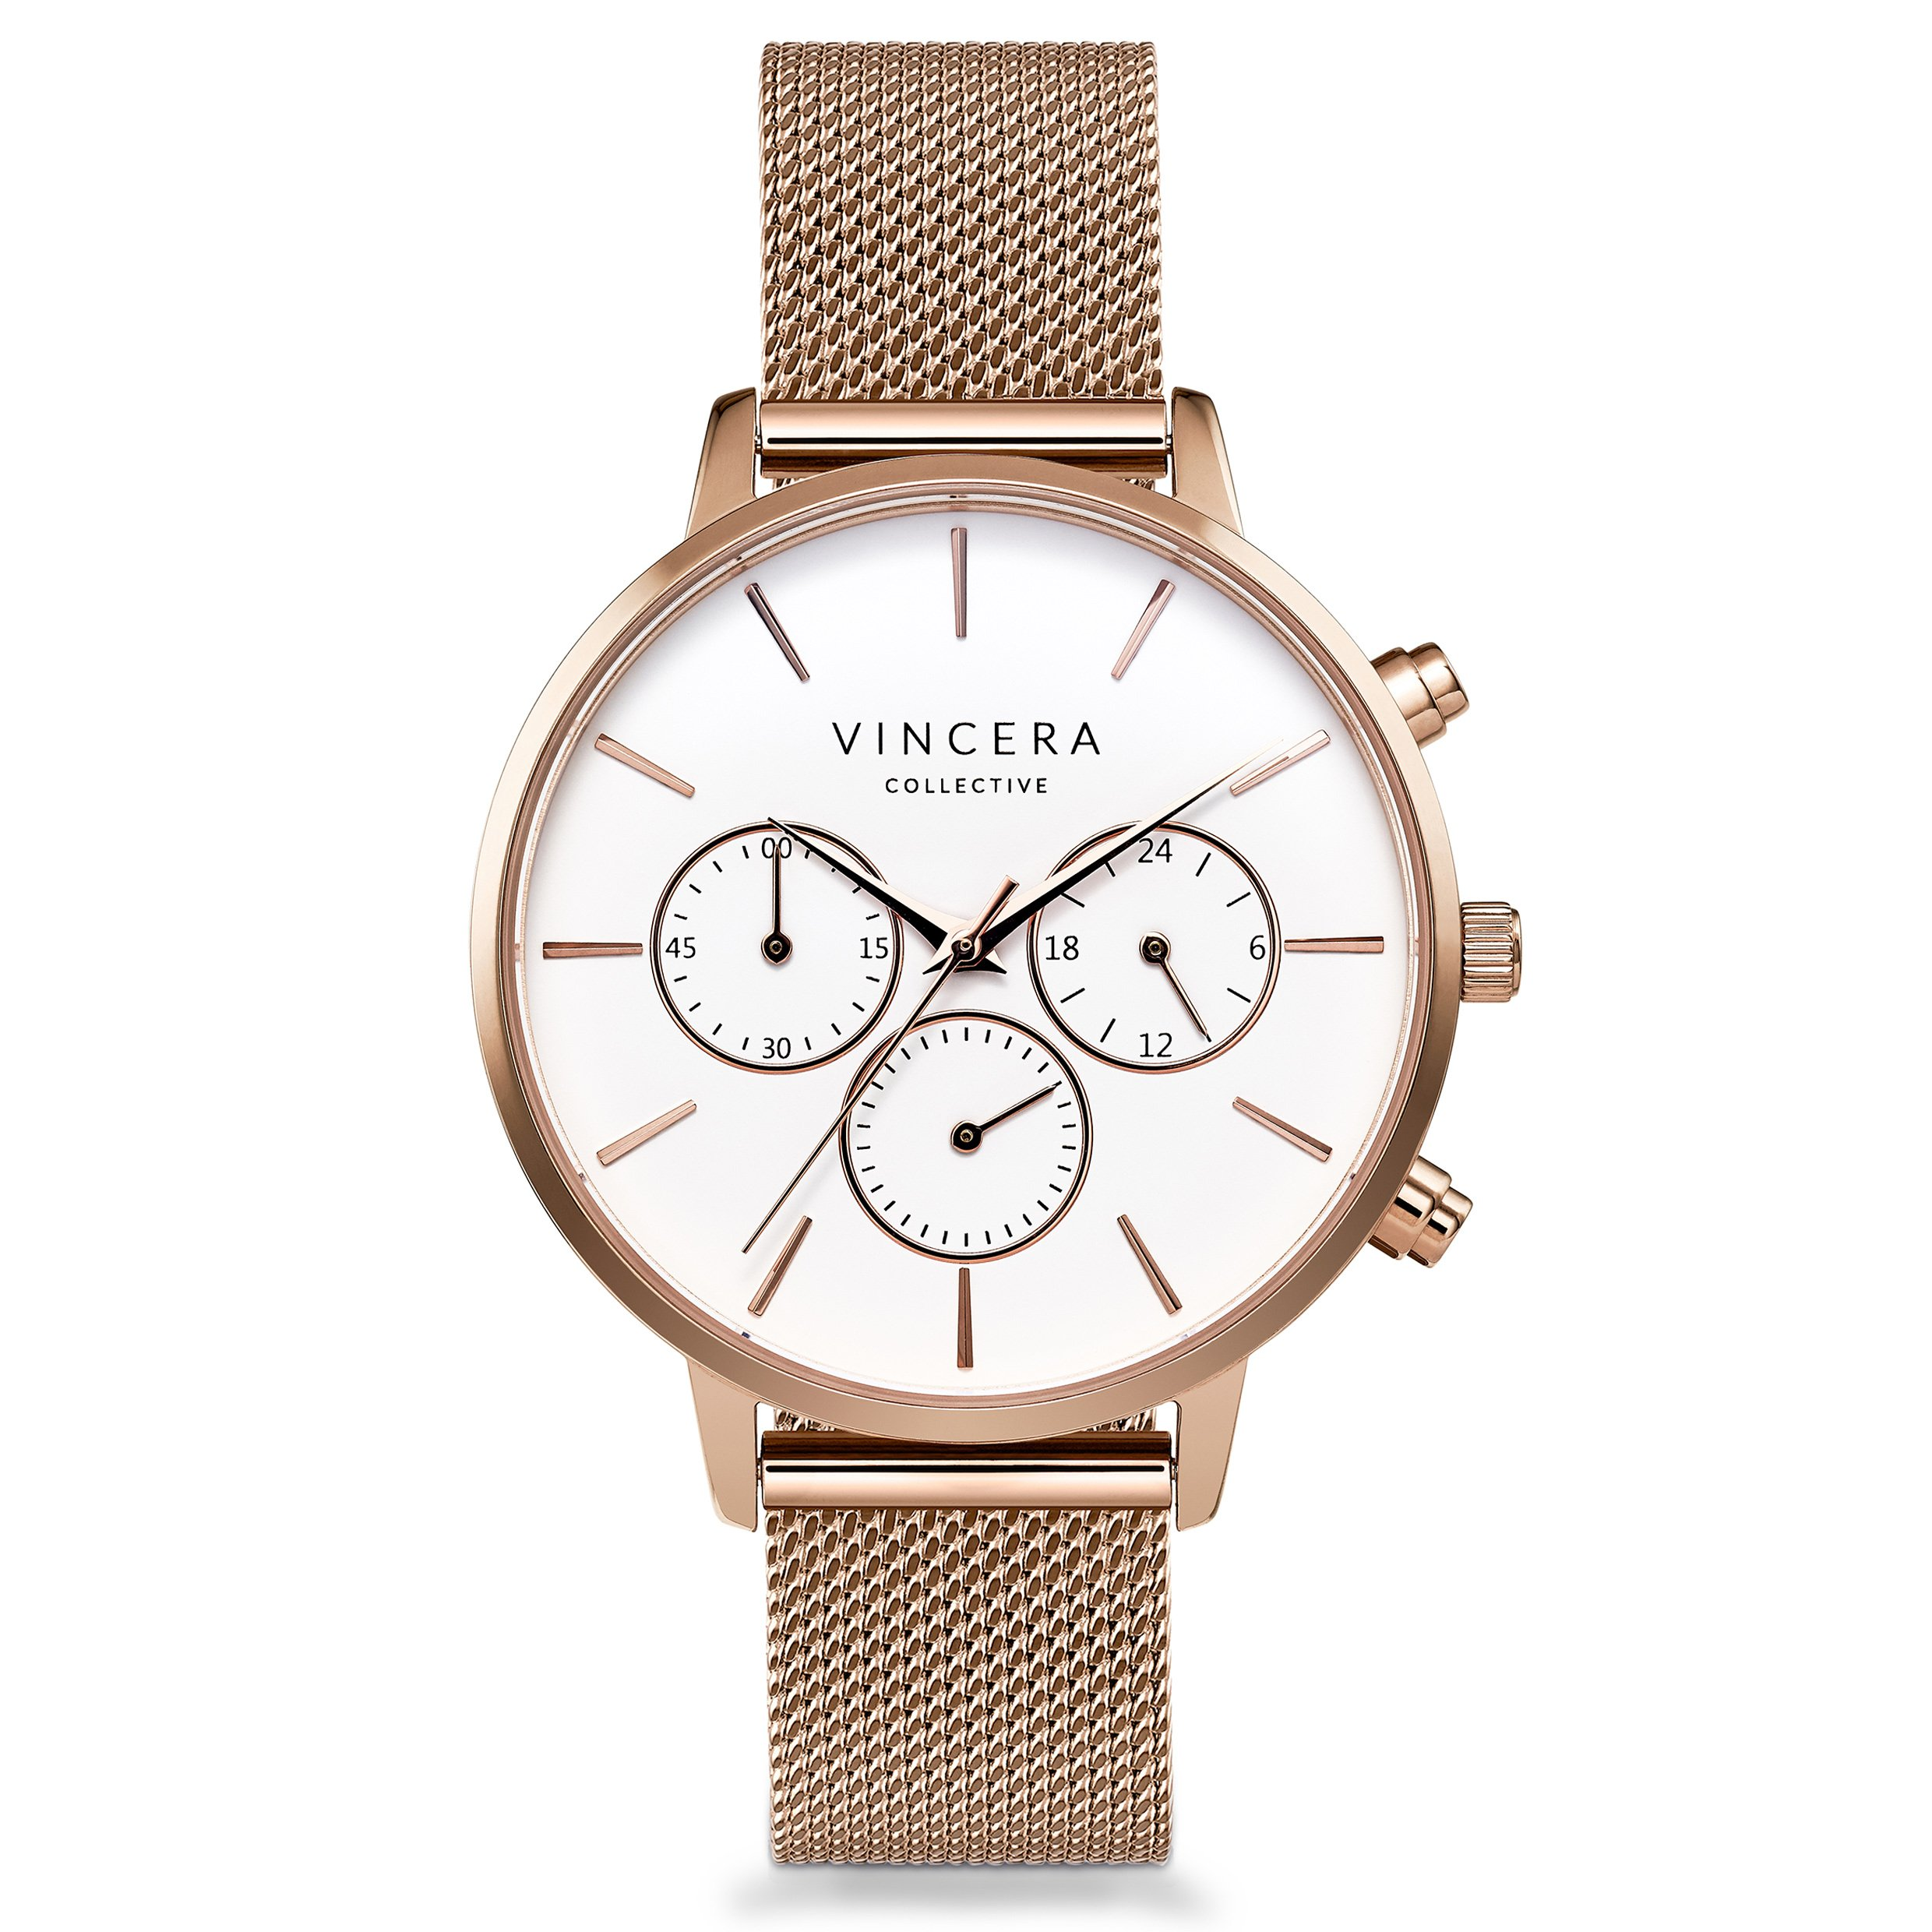 Vincero Luxury Woman's Kleio Wrist Watch — Rose Gold + White dial with a Rose Gold Mesh Watch Band — 38mm Chronograph Watch — Japanese Quartz Movement by Vincero